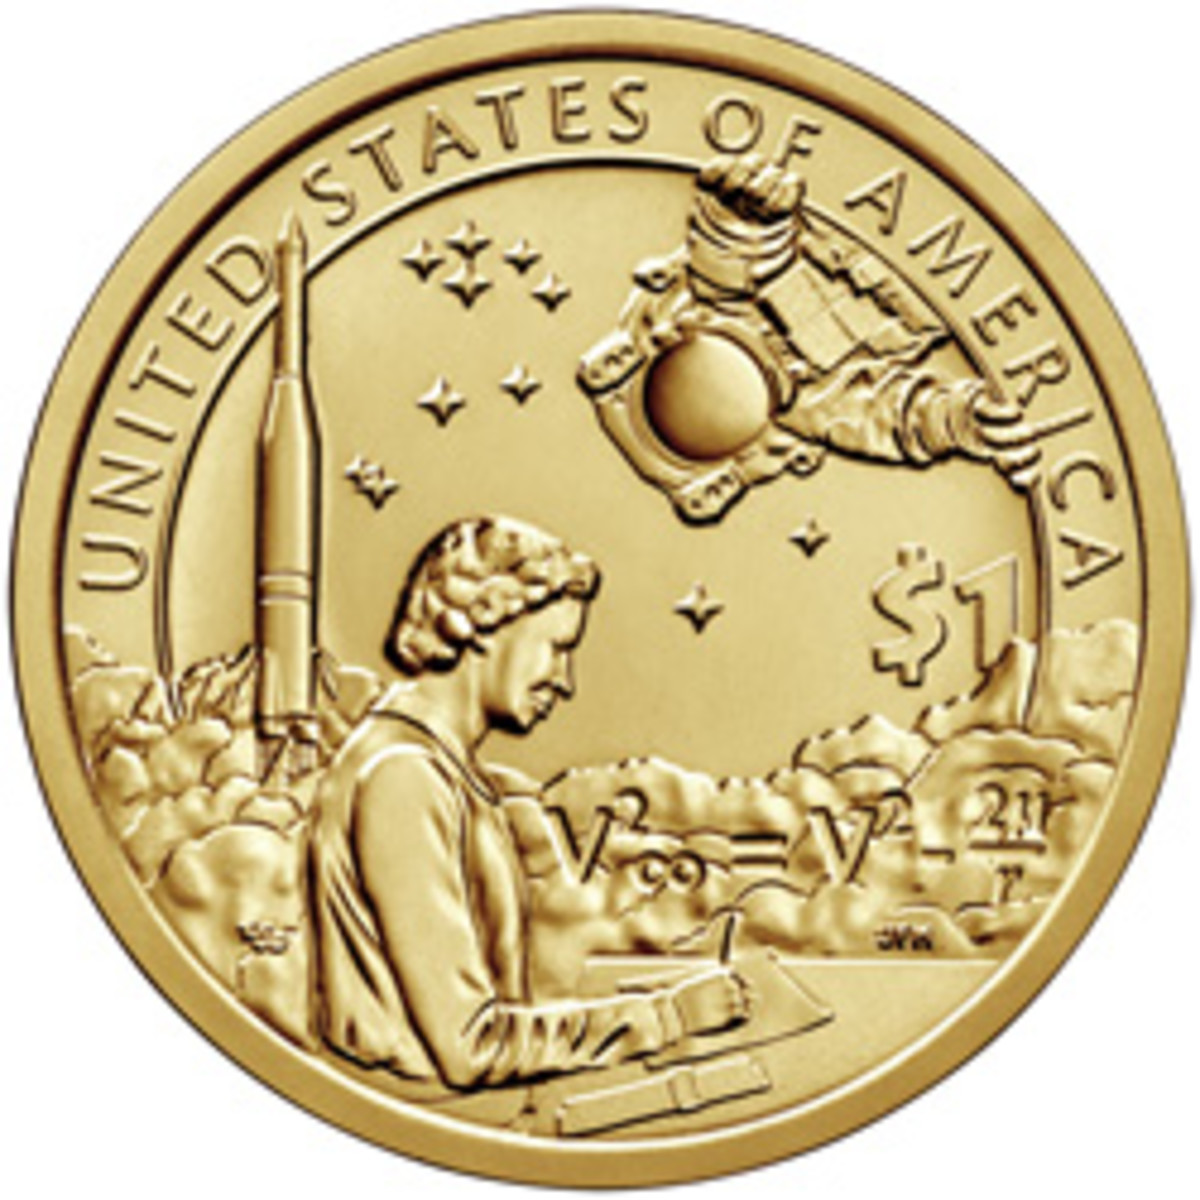 Who is that peering at us from the 1 o'clock position on the new 2019 Native American dollar coin?